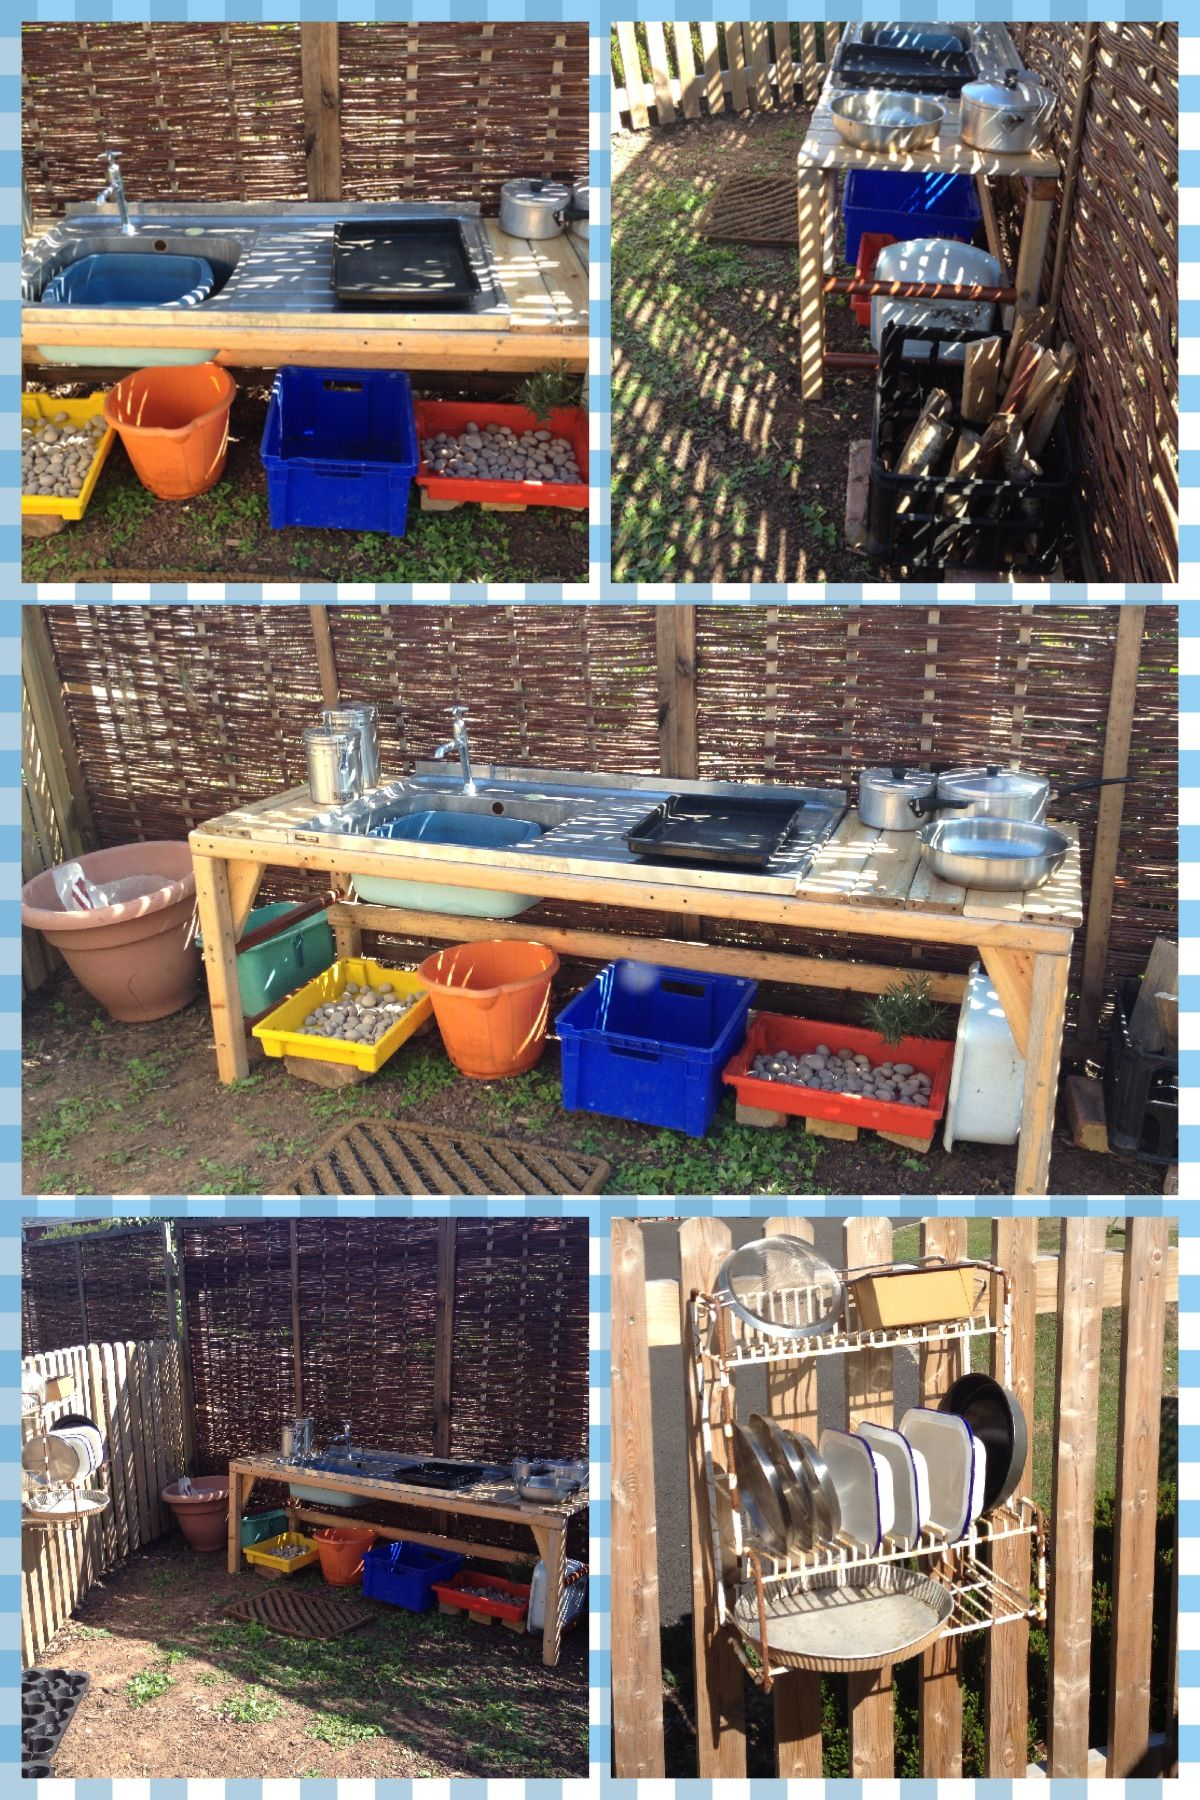 Our New Outdoor Kitchen Built Using Completely Recycled Materials By My Amazing Dad Outdoor Learning Spaces Outdoor Classroom Outdoor Play Spaces